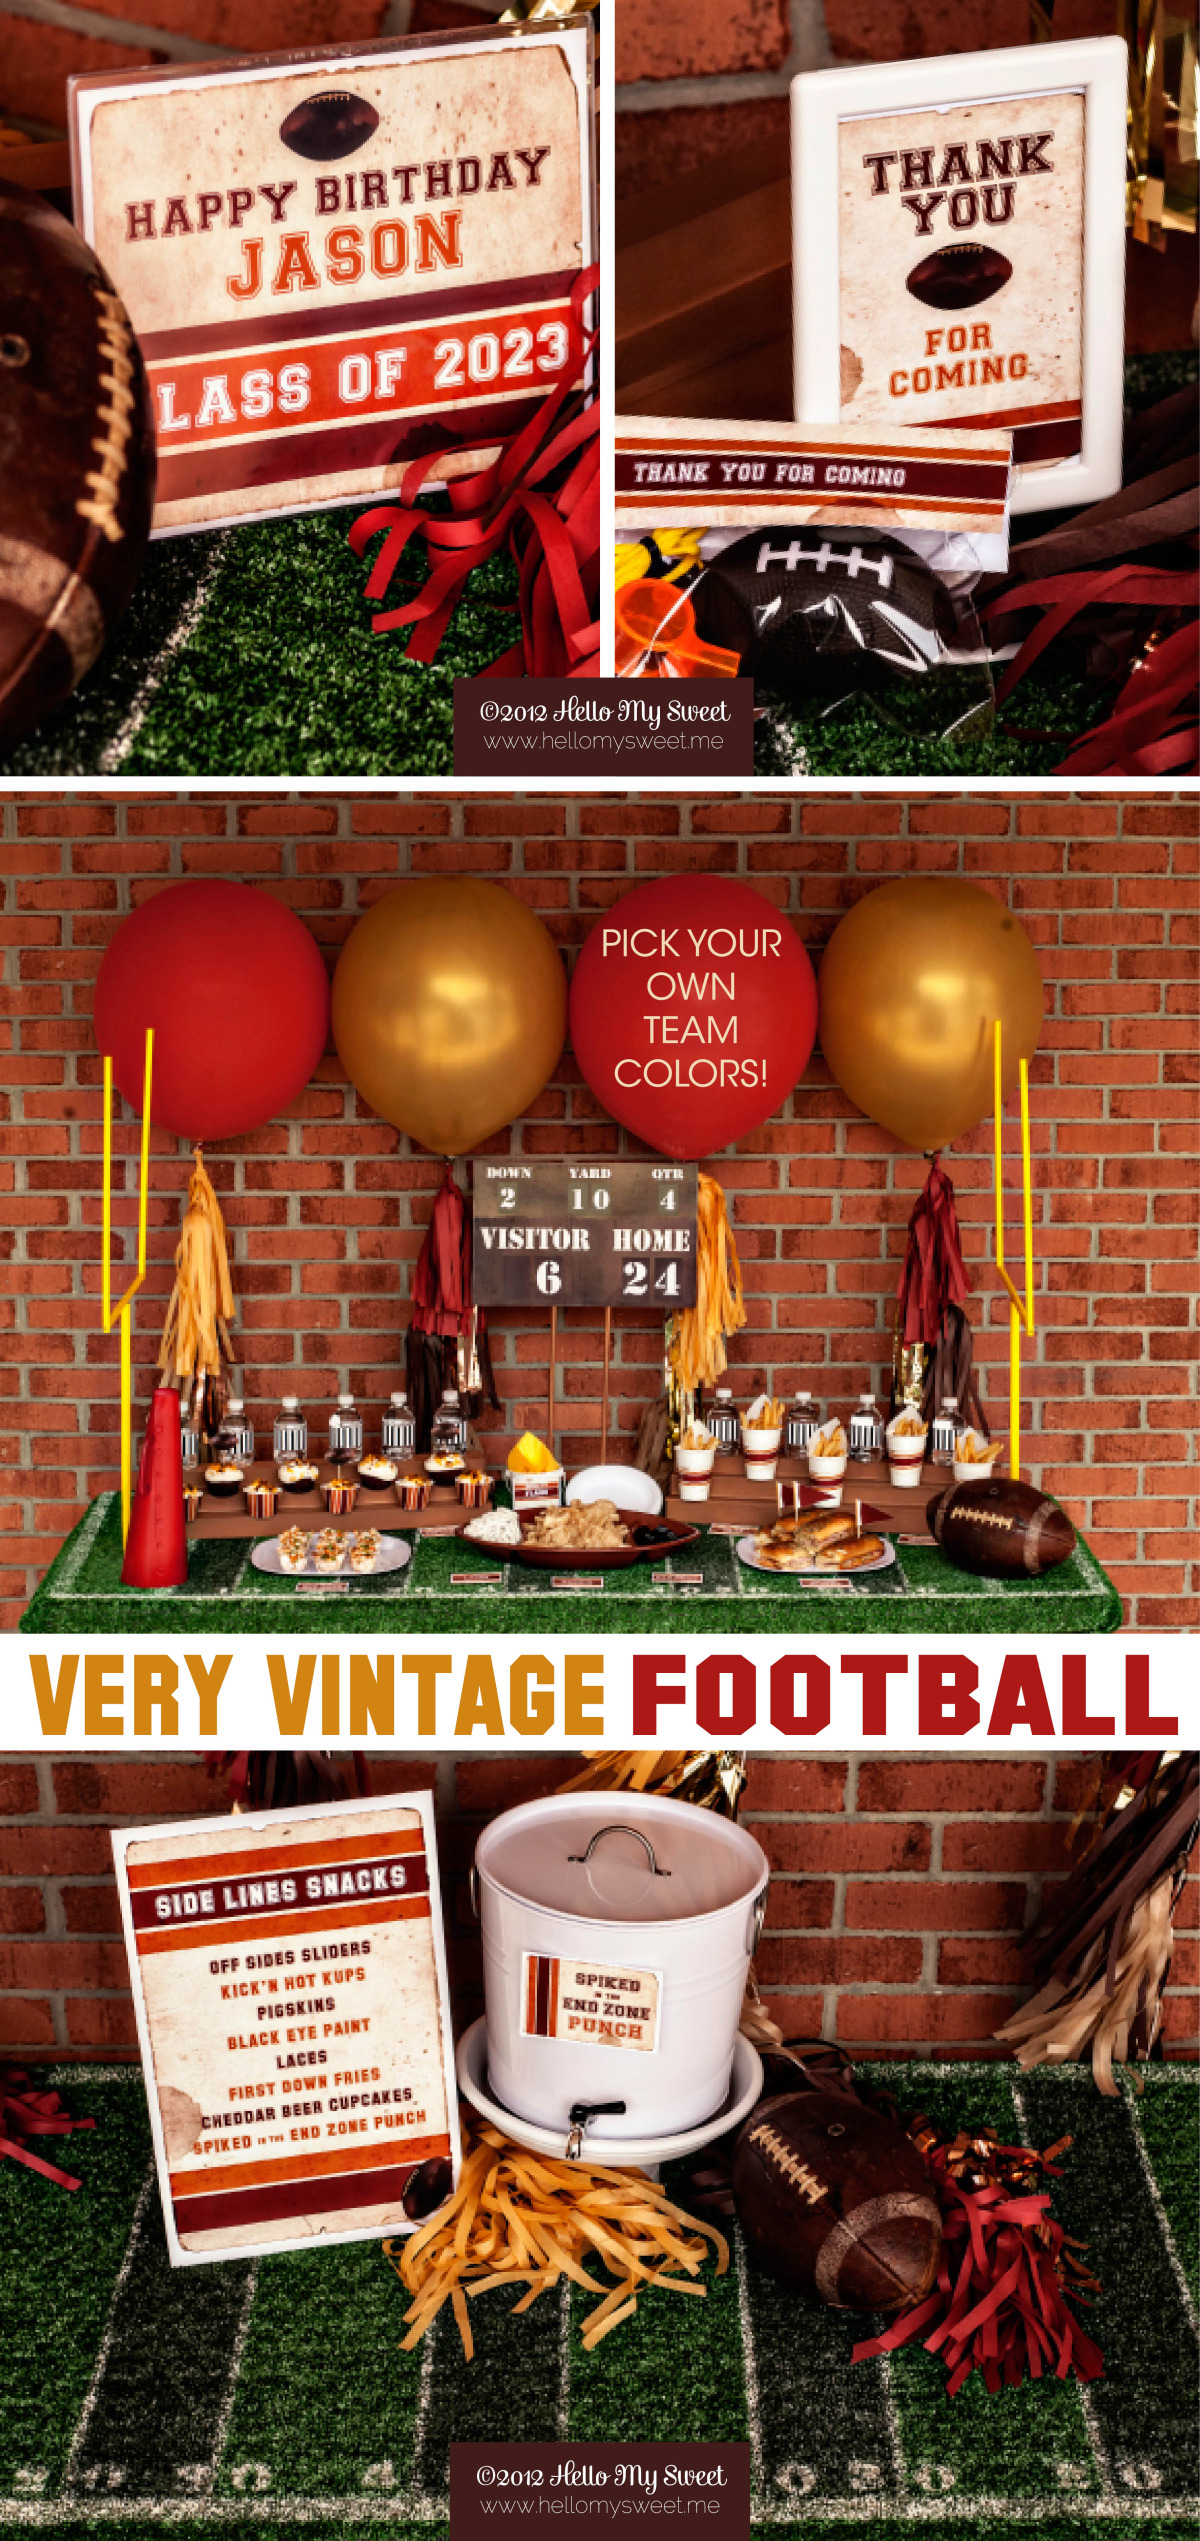 Vintage Football, Super Bowl & Tailgating Party